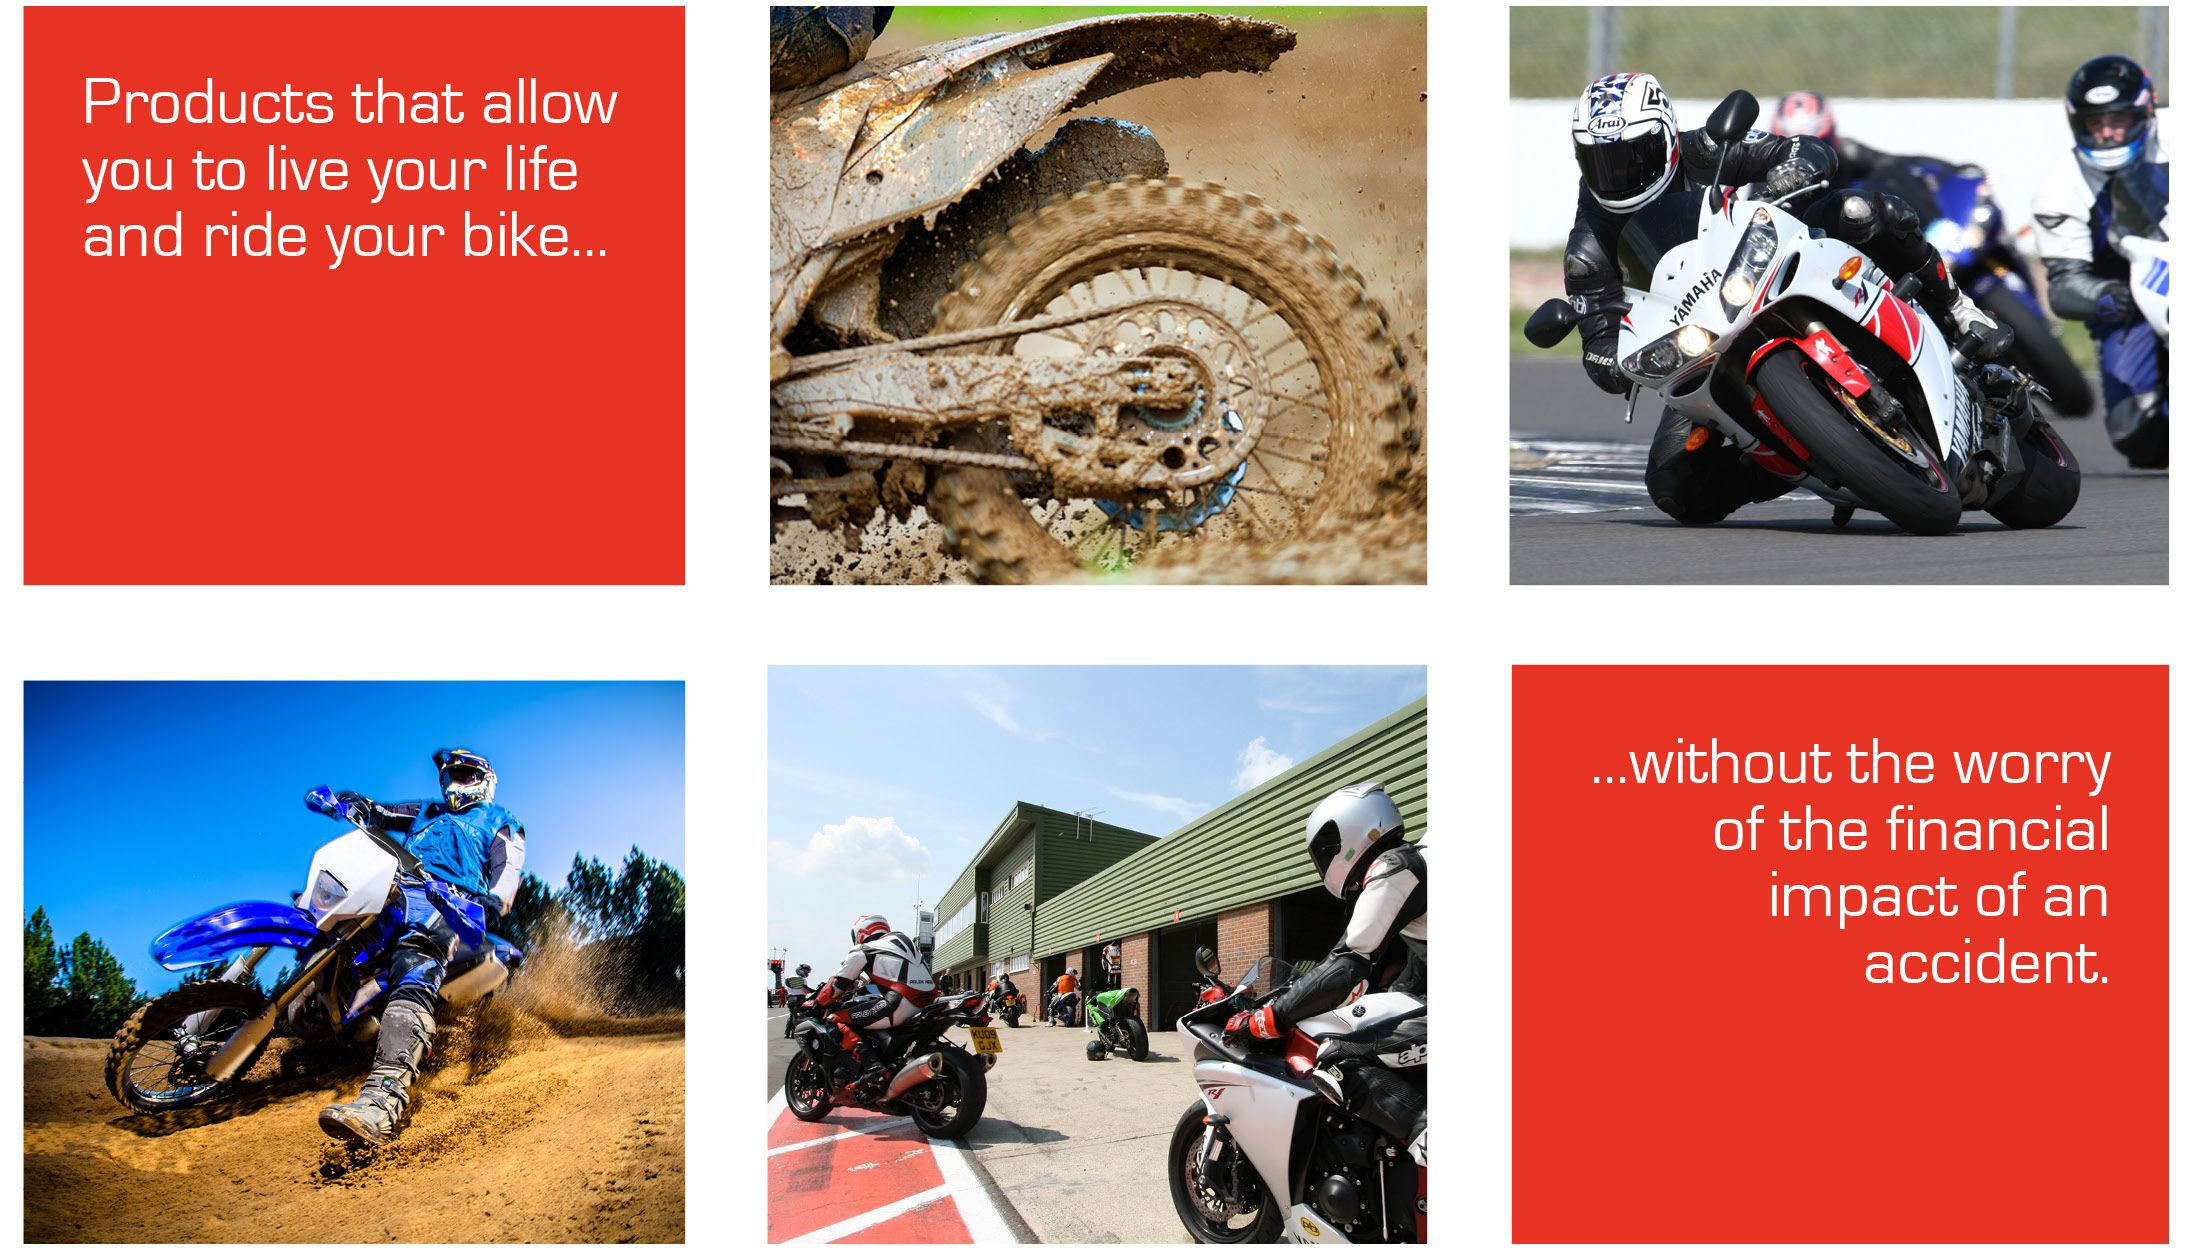 BeMoto Biker Personal Injury Plans